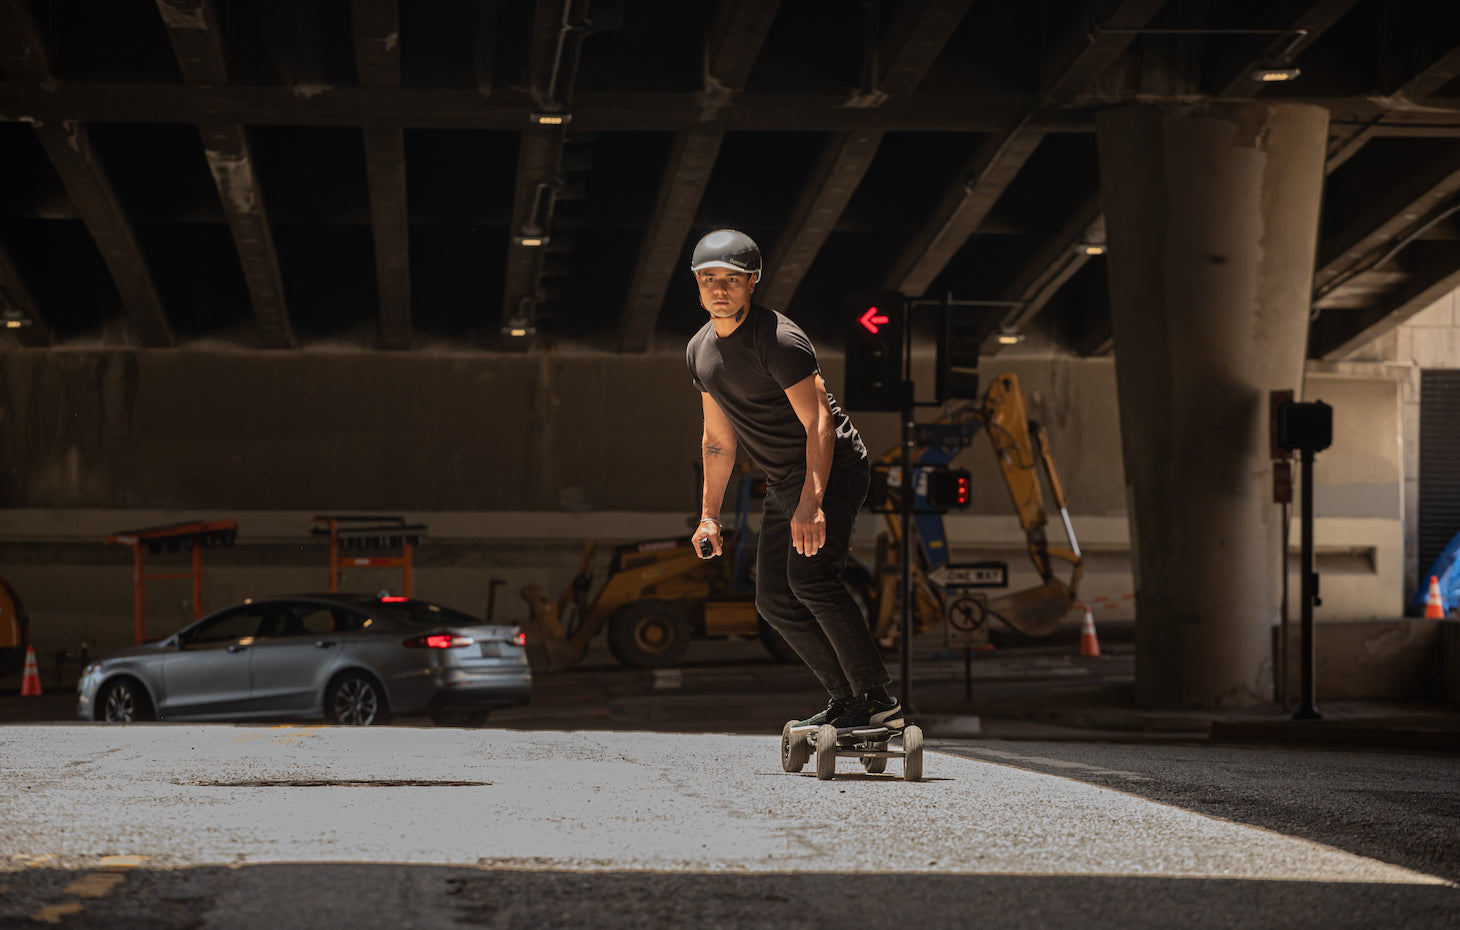 FINDING THE BEST ELECTRIC SKATEBOARD HELMET FOR YOUR NEEDS